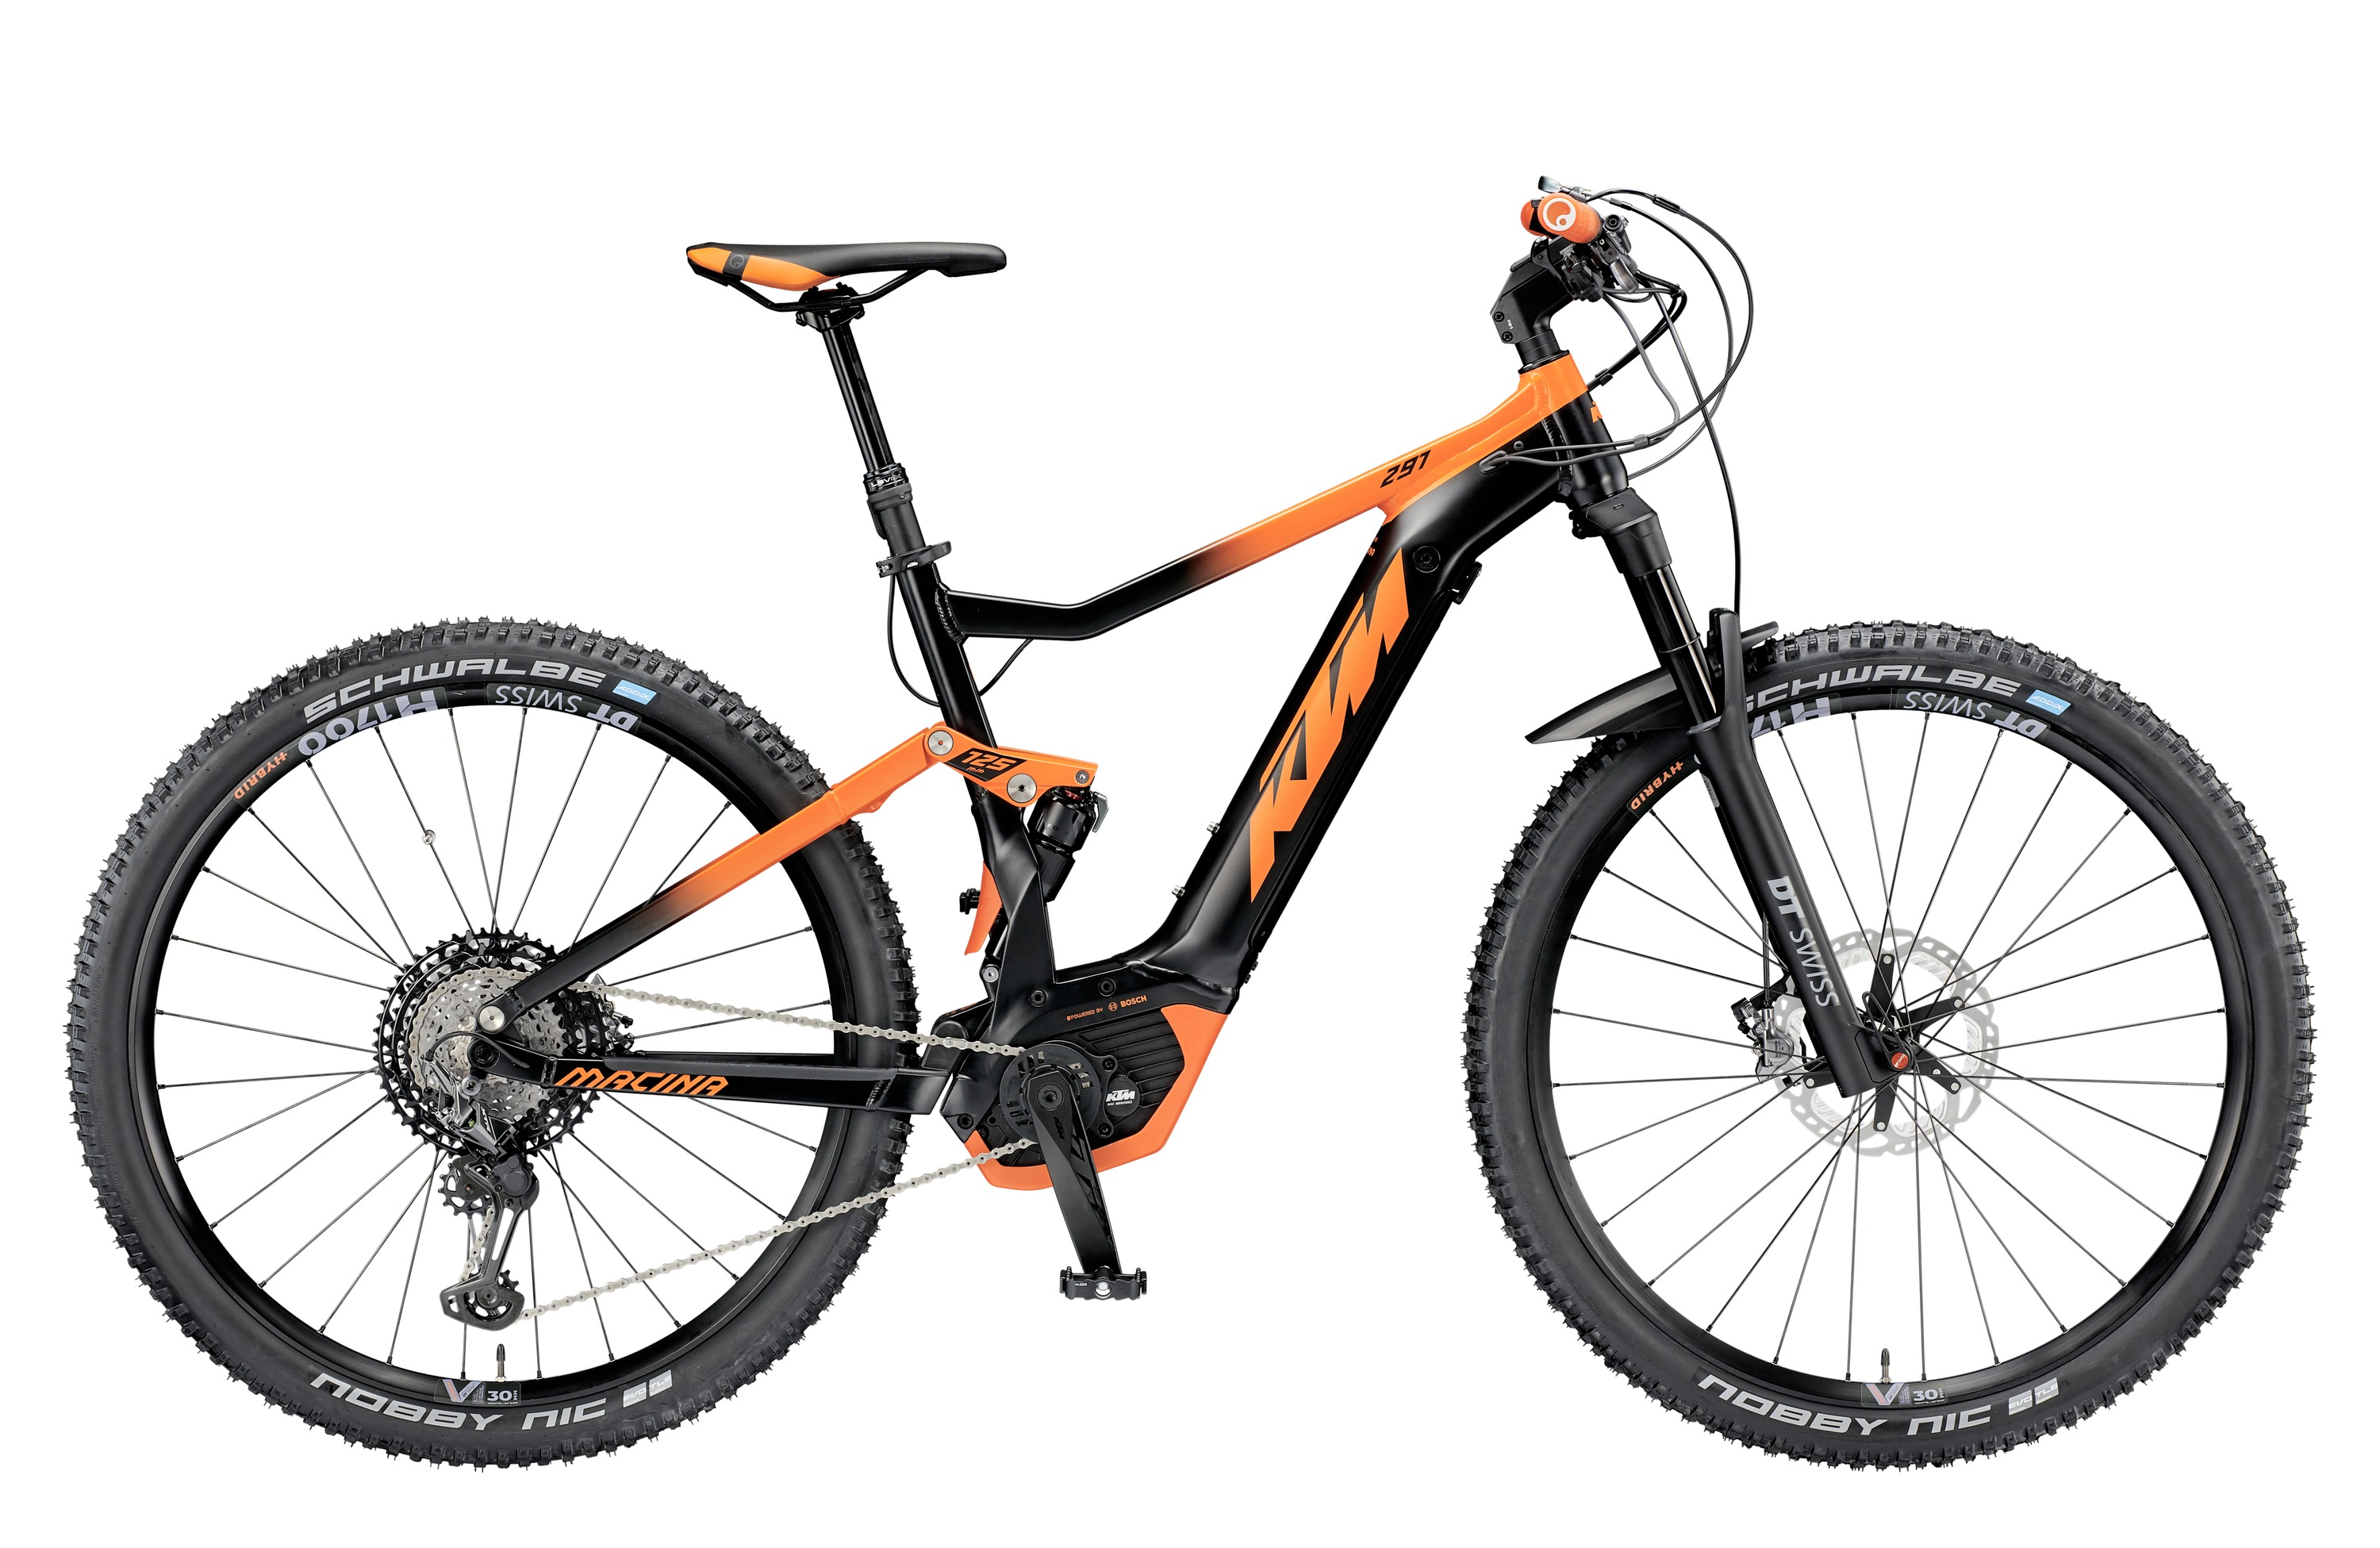 799410108_MACINA CHACANA 291 M-48_black matt (orange)